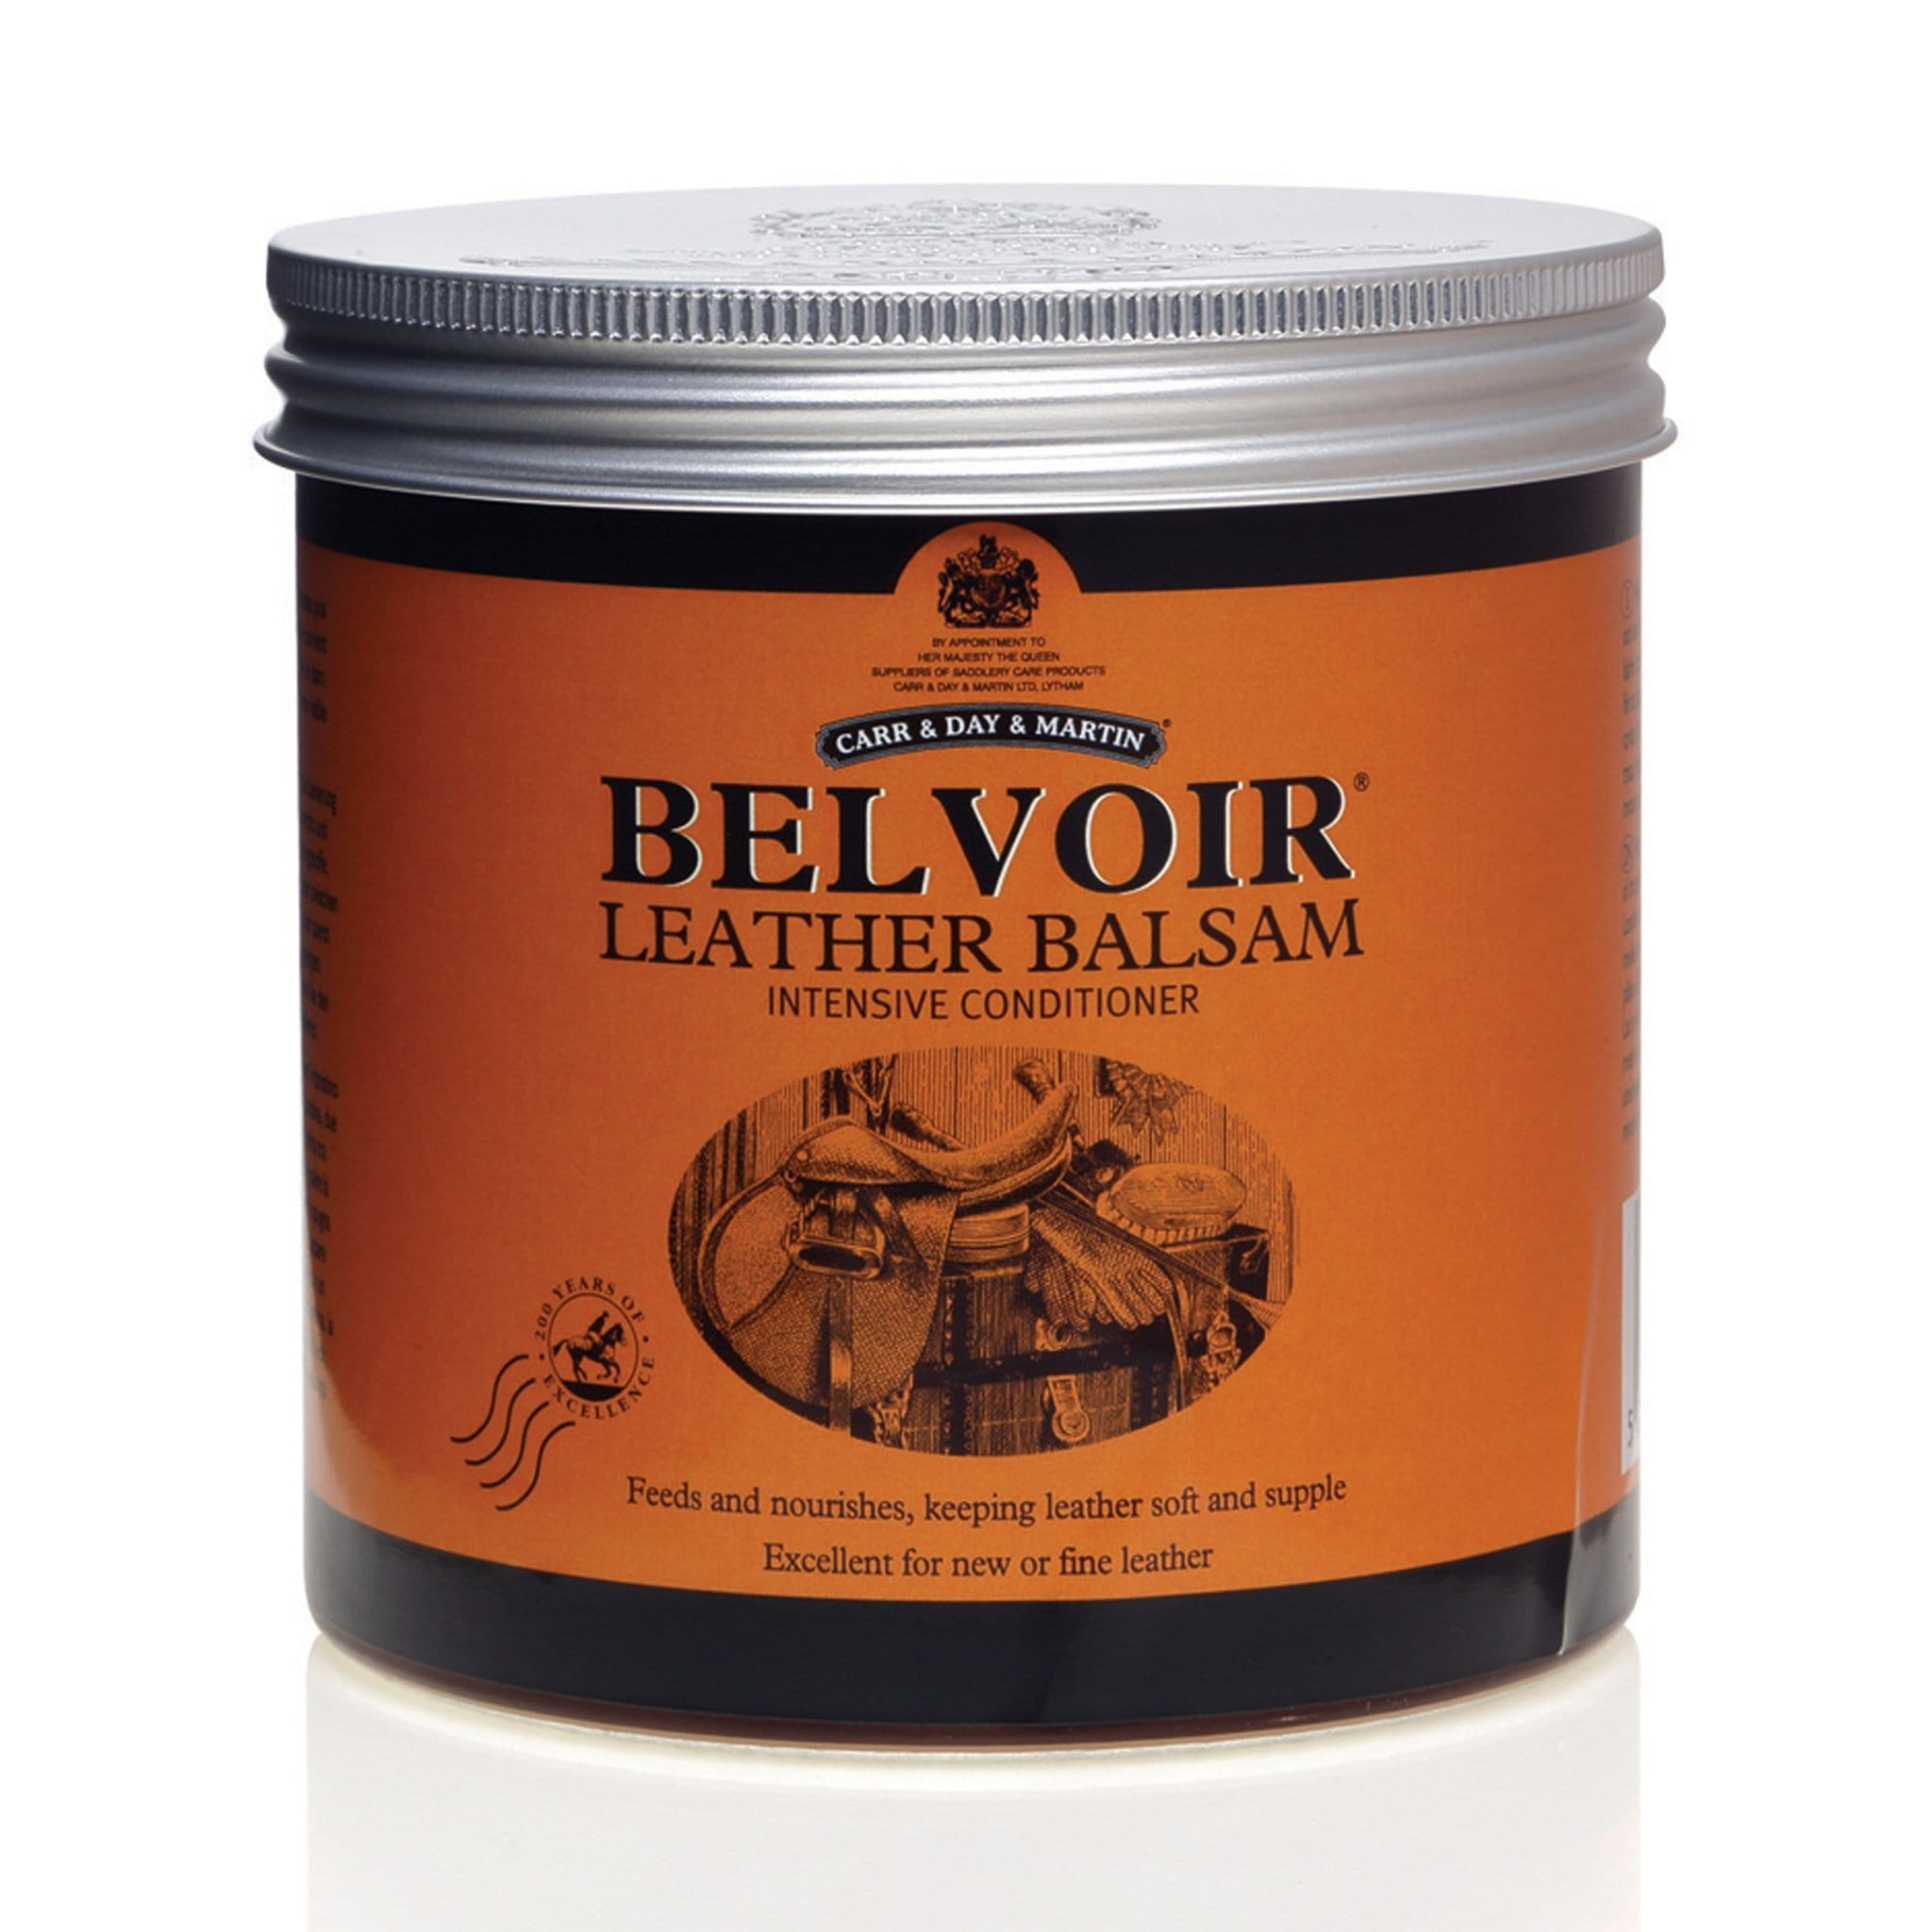 Carr & Day & Martin Belvoir Leather Balsam Intensive Conditioner 4914